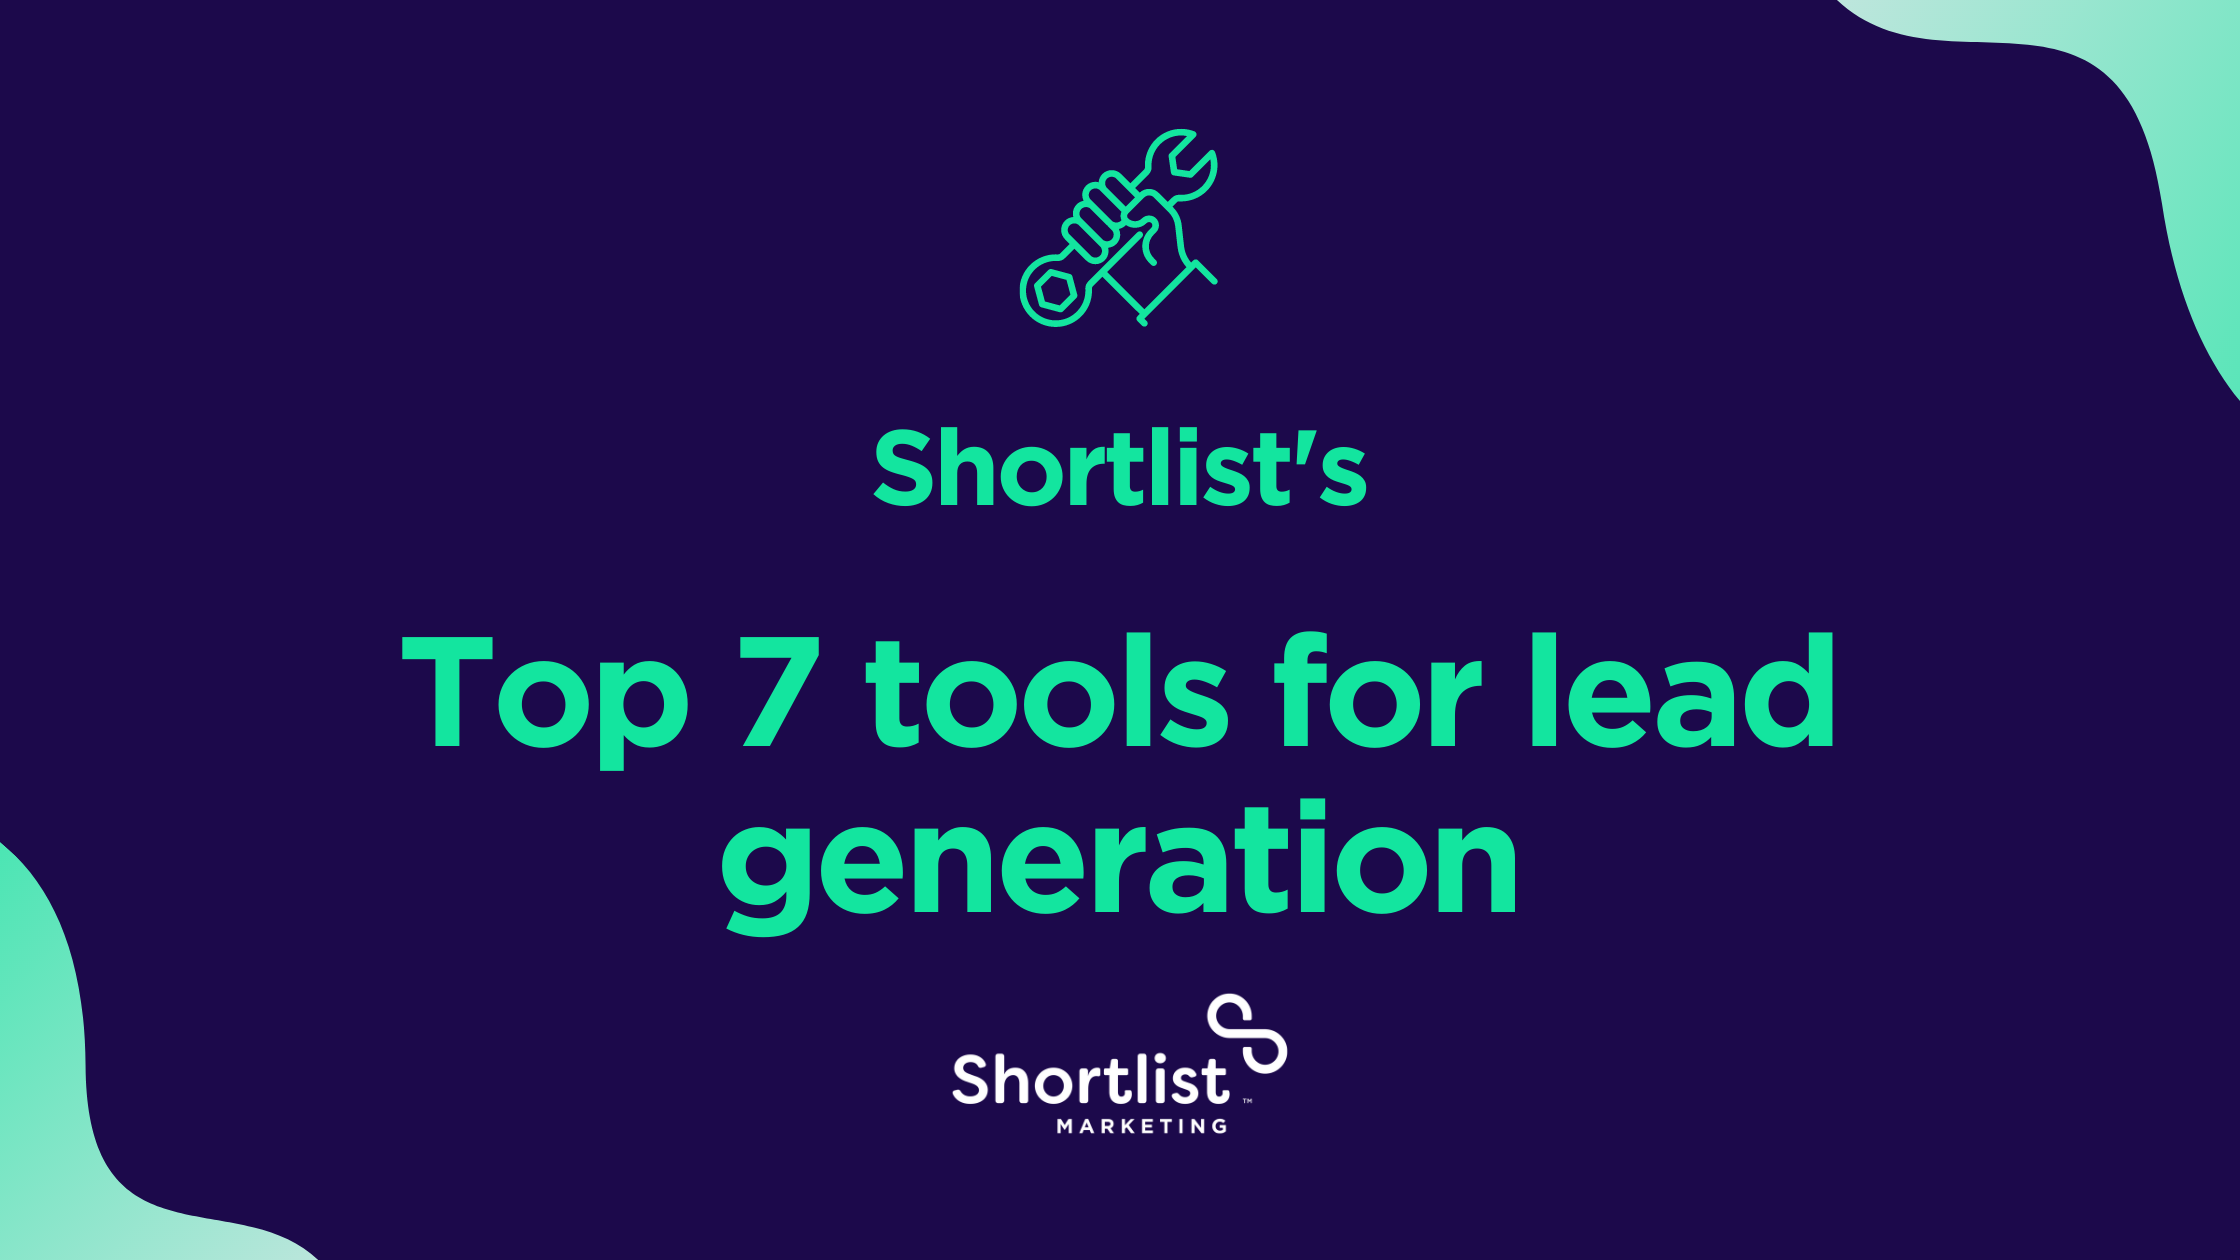 Shortlist's top 7 tools for lead generation